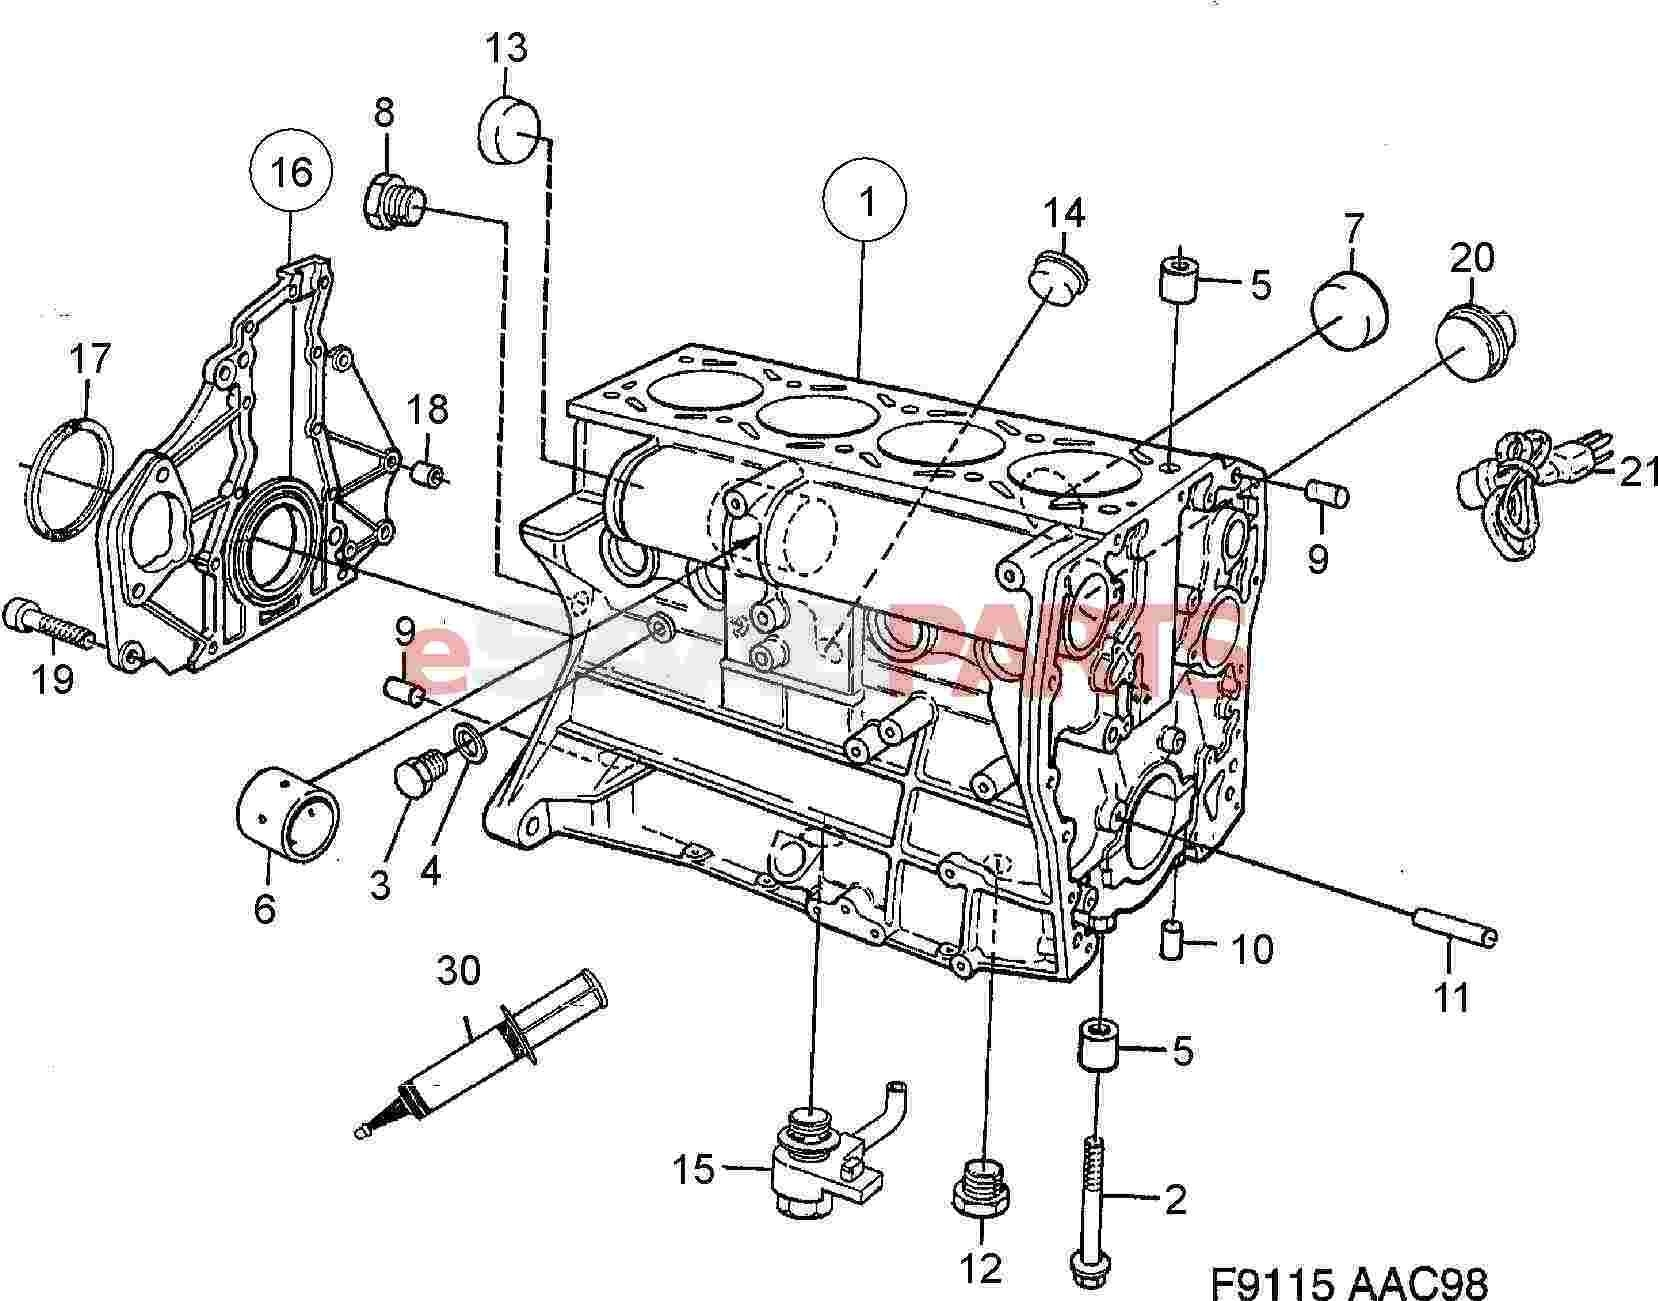 Toyota Mr2 Interior Parts Diagram Wire Data Schema 1990 Pickup Engine Saab 9 3 Arc U2022 Wiring For Free 1993 Corolla 4afe Fuel Pump Canister